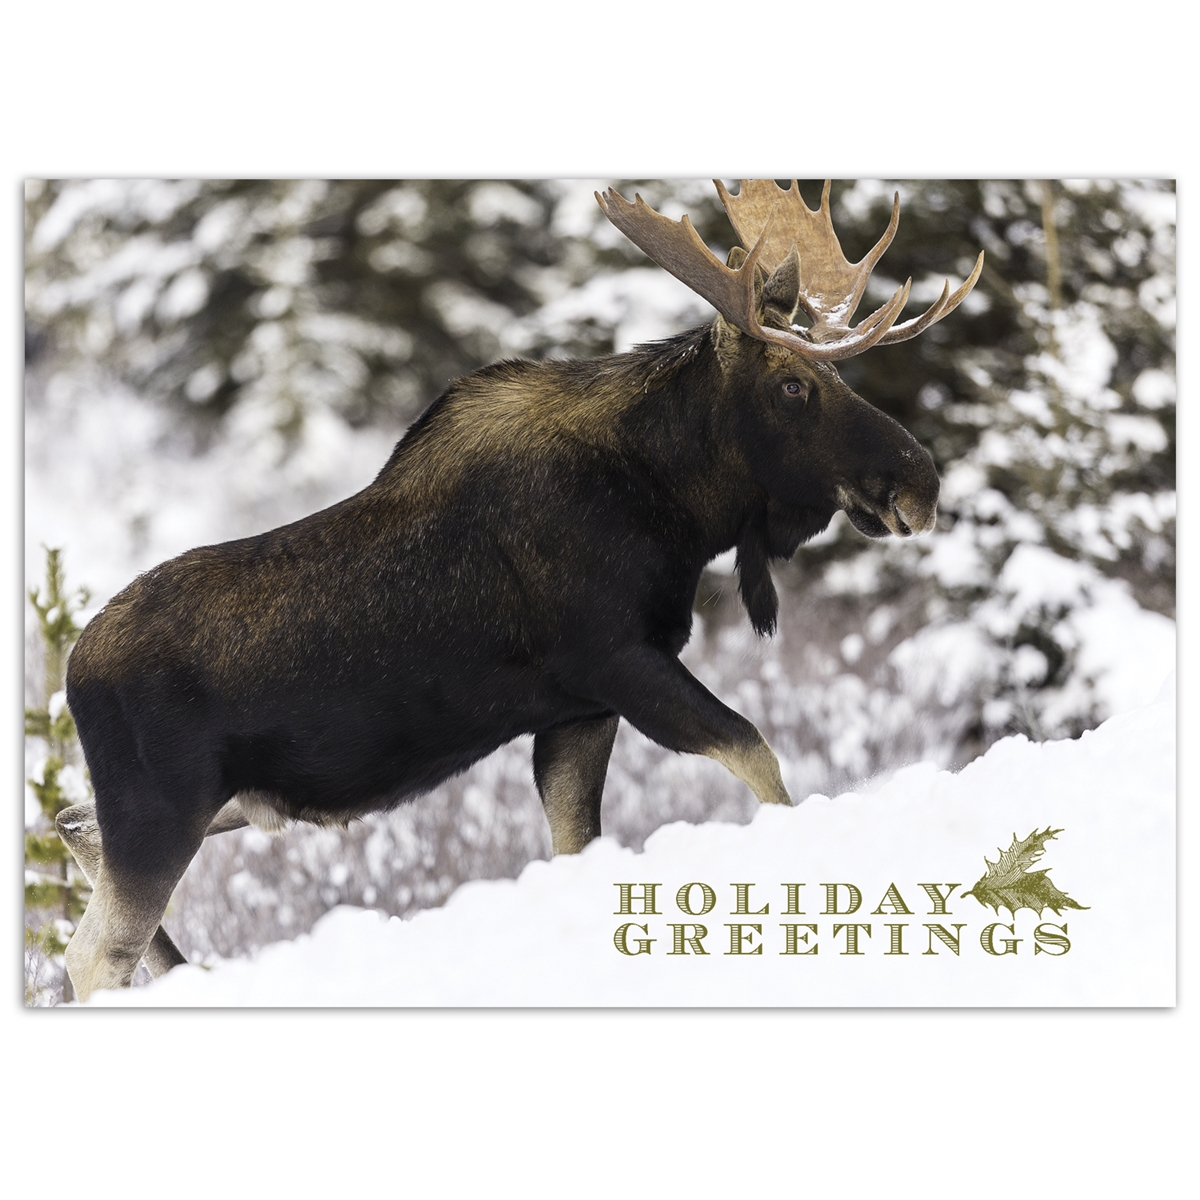 Majestic Moose Card